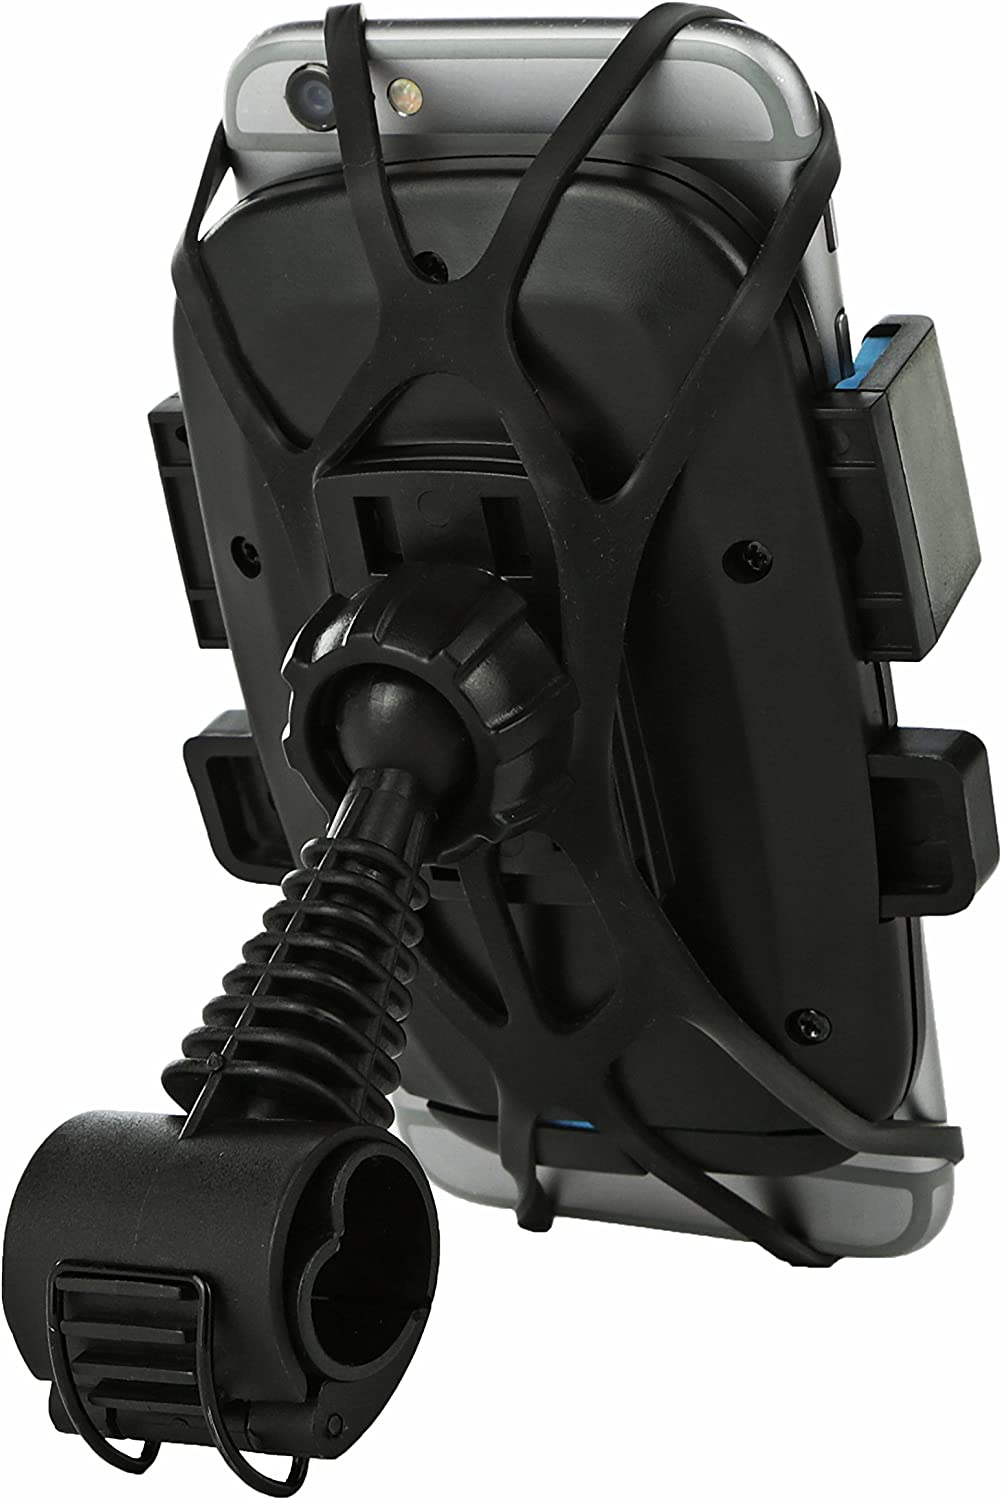 Shock Resistant Waterproof Cellphone Holder with 360/° Rotating Pivot Stand and Non Slip Rubber Cradle Universal Bike Phone Mount Bicycle Holder for Mobile Phones Android iPhone Samsung Smartphones